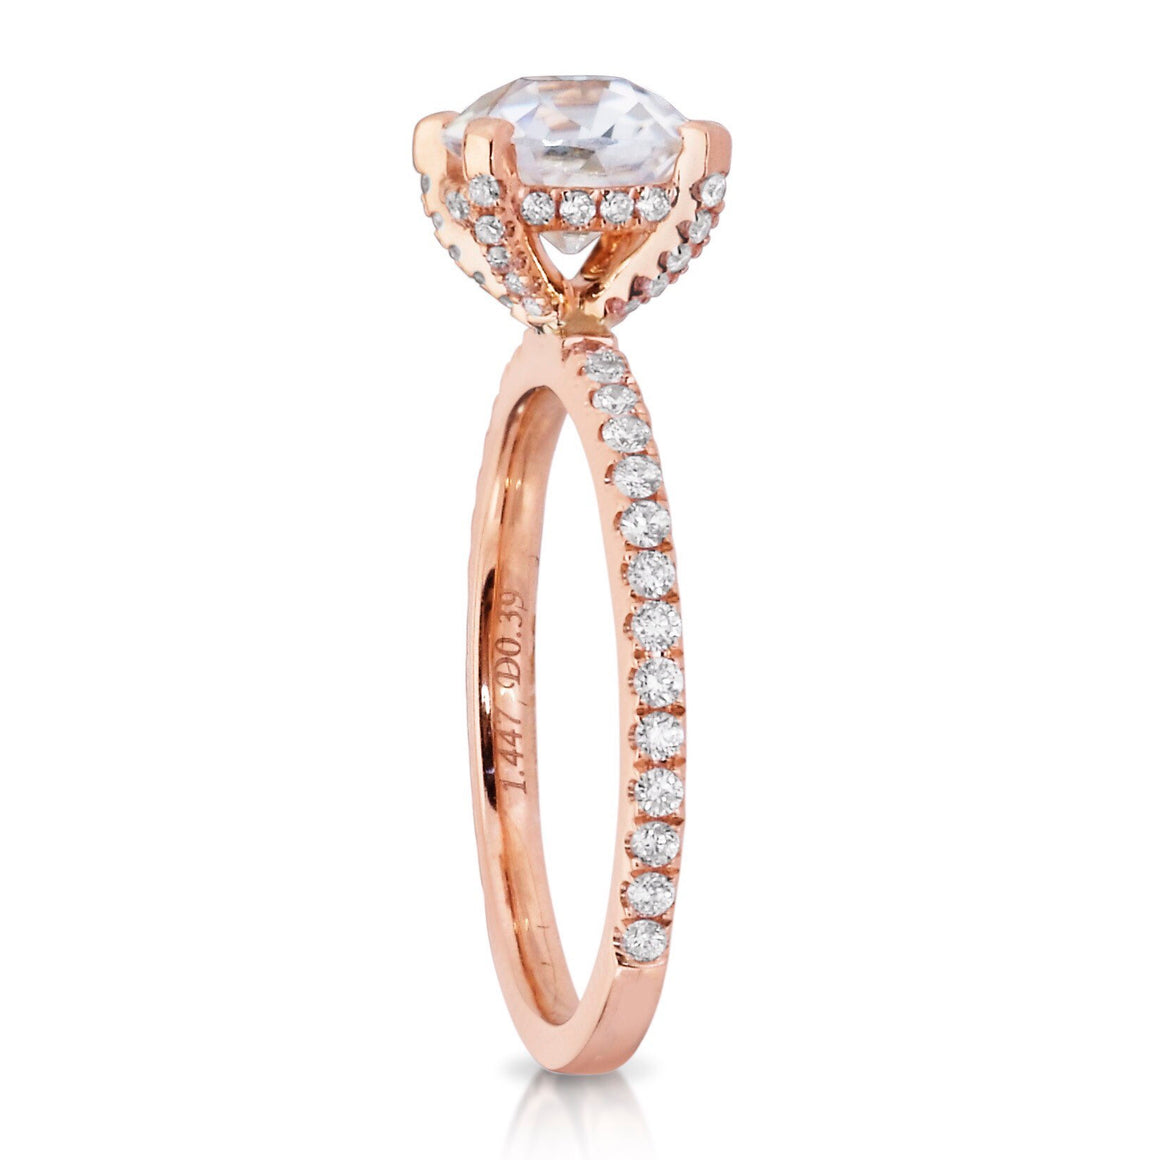 Moissanite Cushion Cut Diamond Engagement Ring 18kt Rose Gold